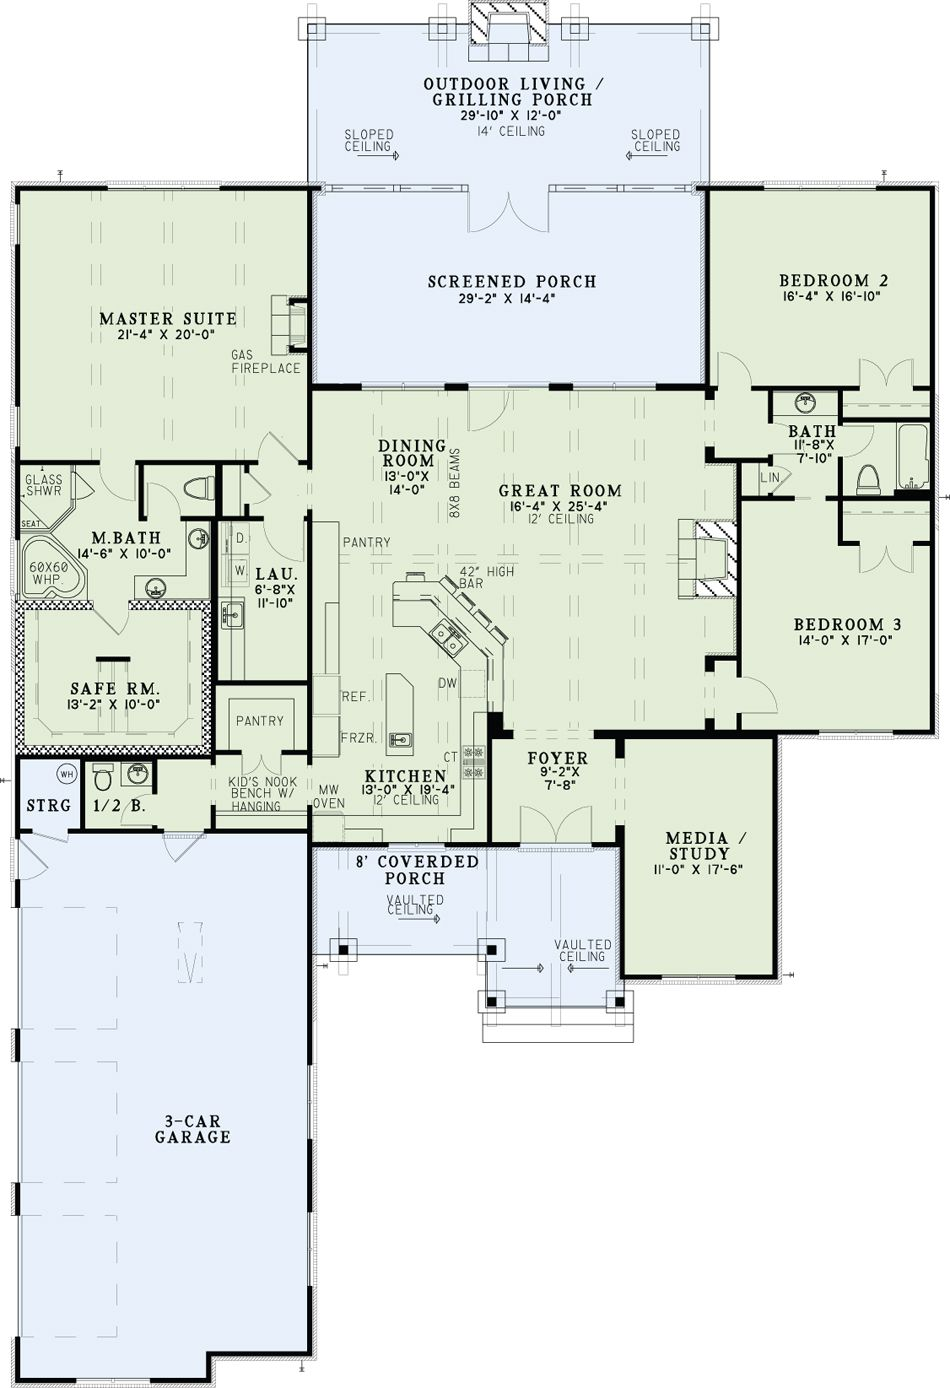 Rustic Style House Plan 3 Bedrms 2 5 Baths 2879 Sq Ft 153 2032 Mountain House Plans Country Style House Plans House Plans One Story